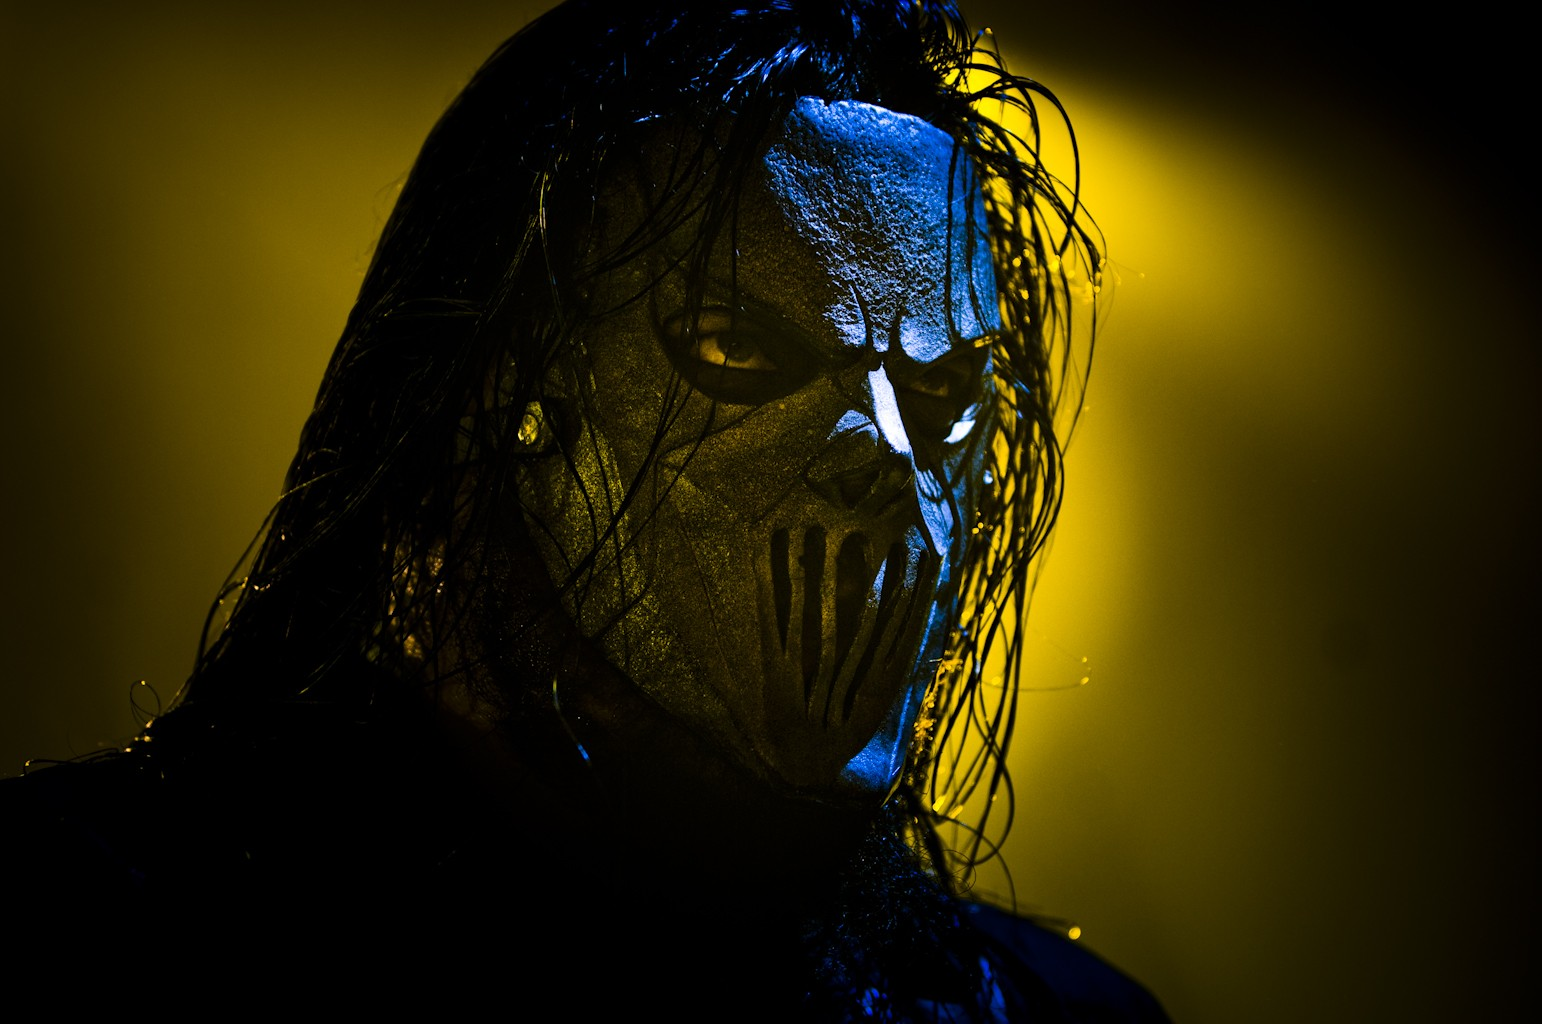 Slipknot Wallpapers HD A8